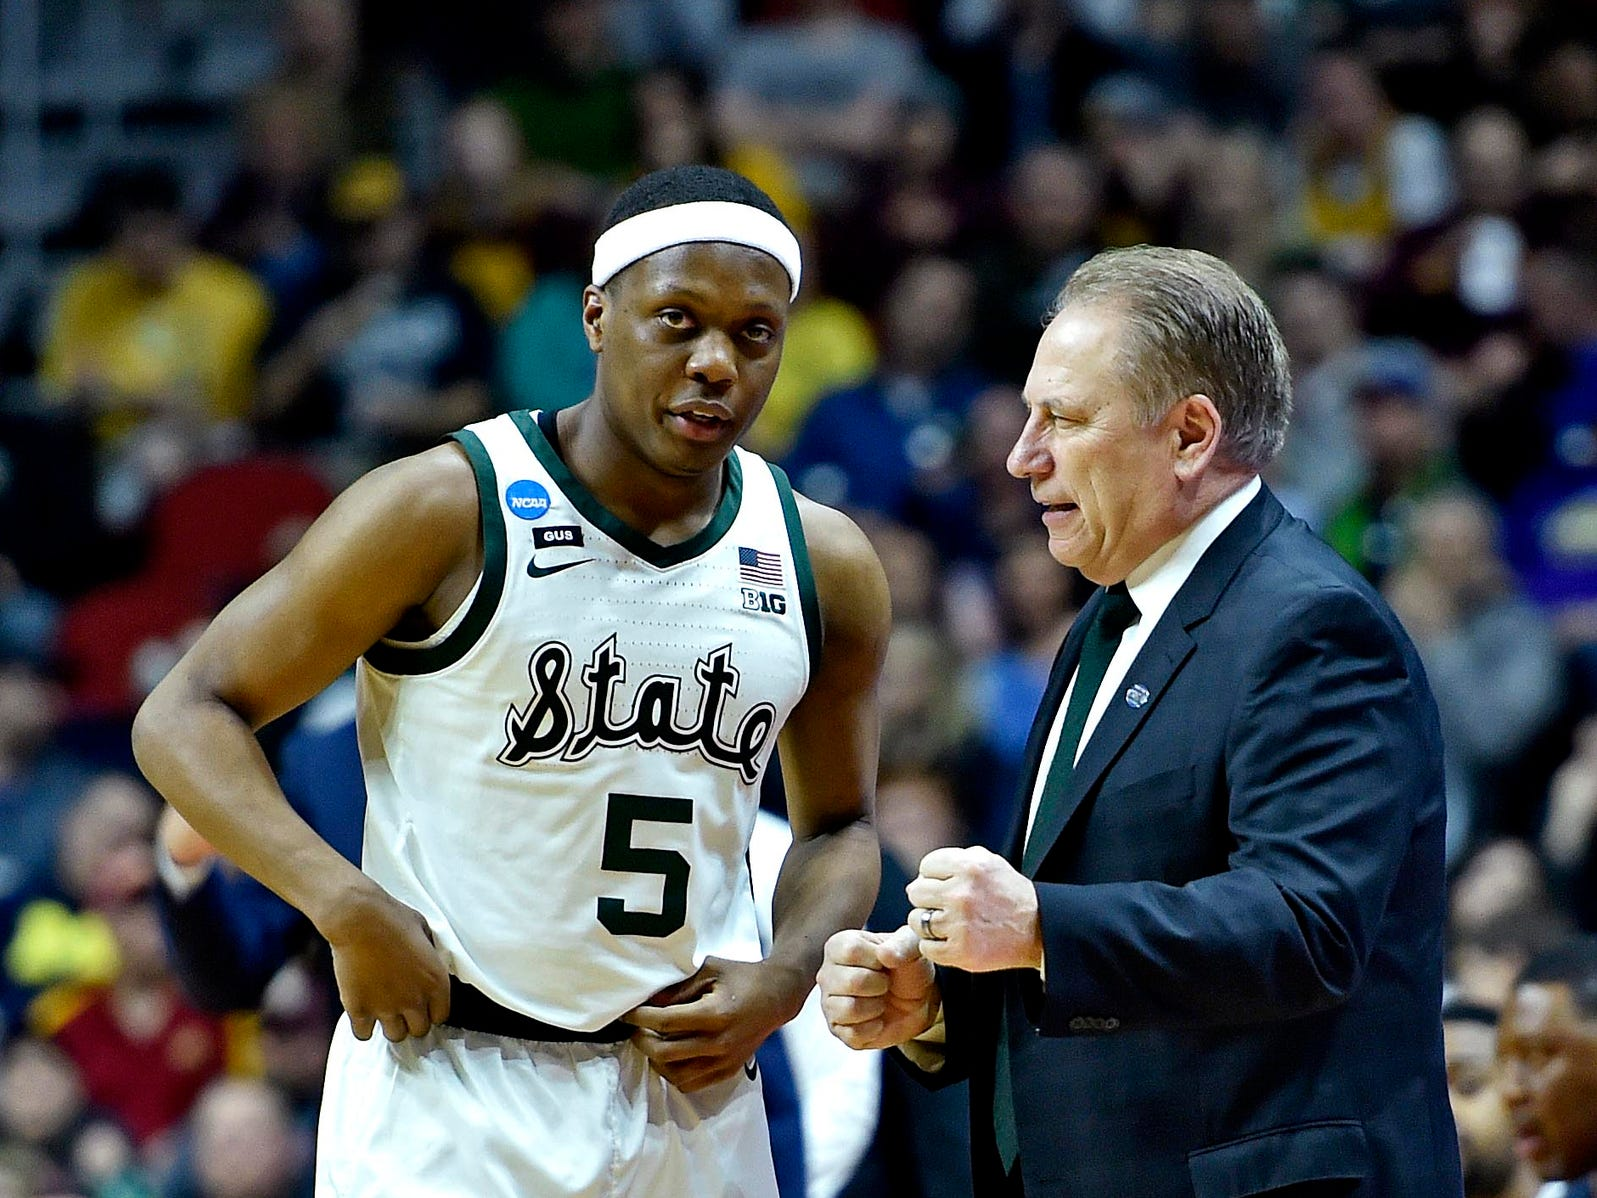 Michigan State coach Tom Izzo talks with guard Cassius Winston in the first half against Minnesota in the second round of the NCAA tournament at Wells Fargo Arena, March 23, 2019.